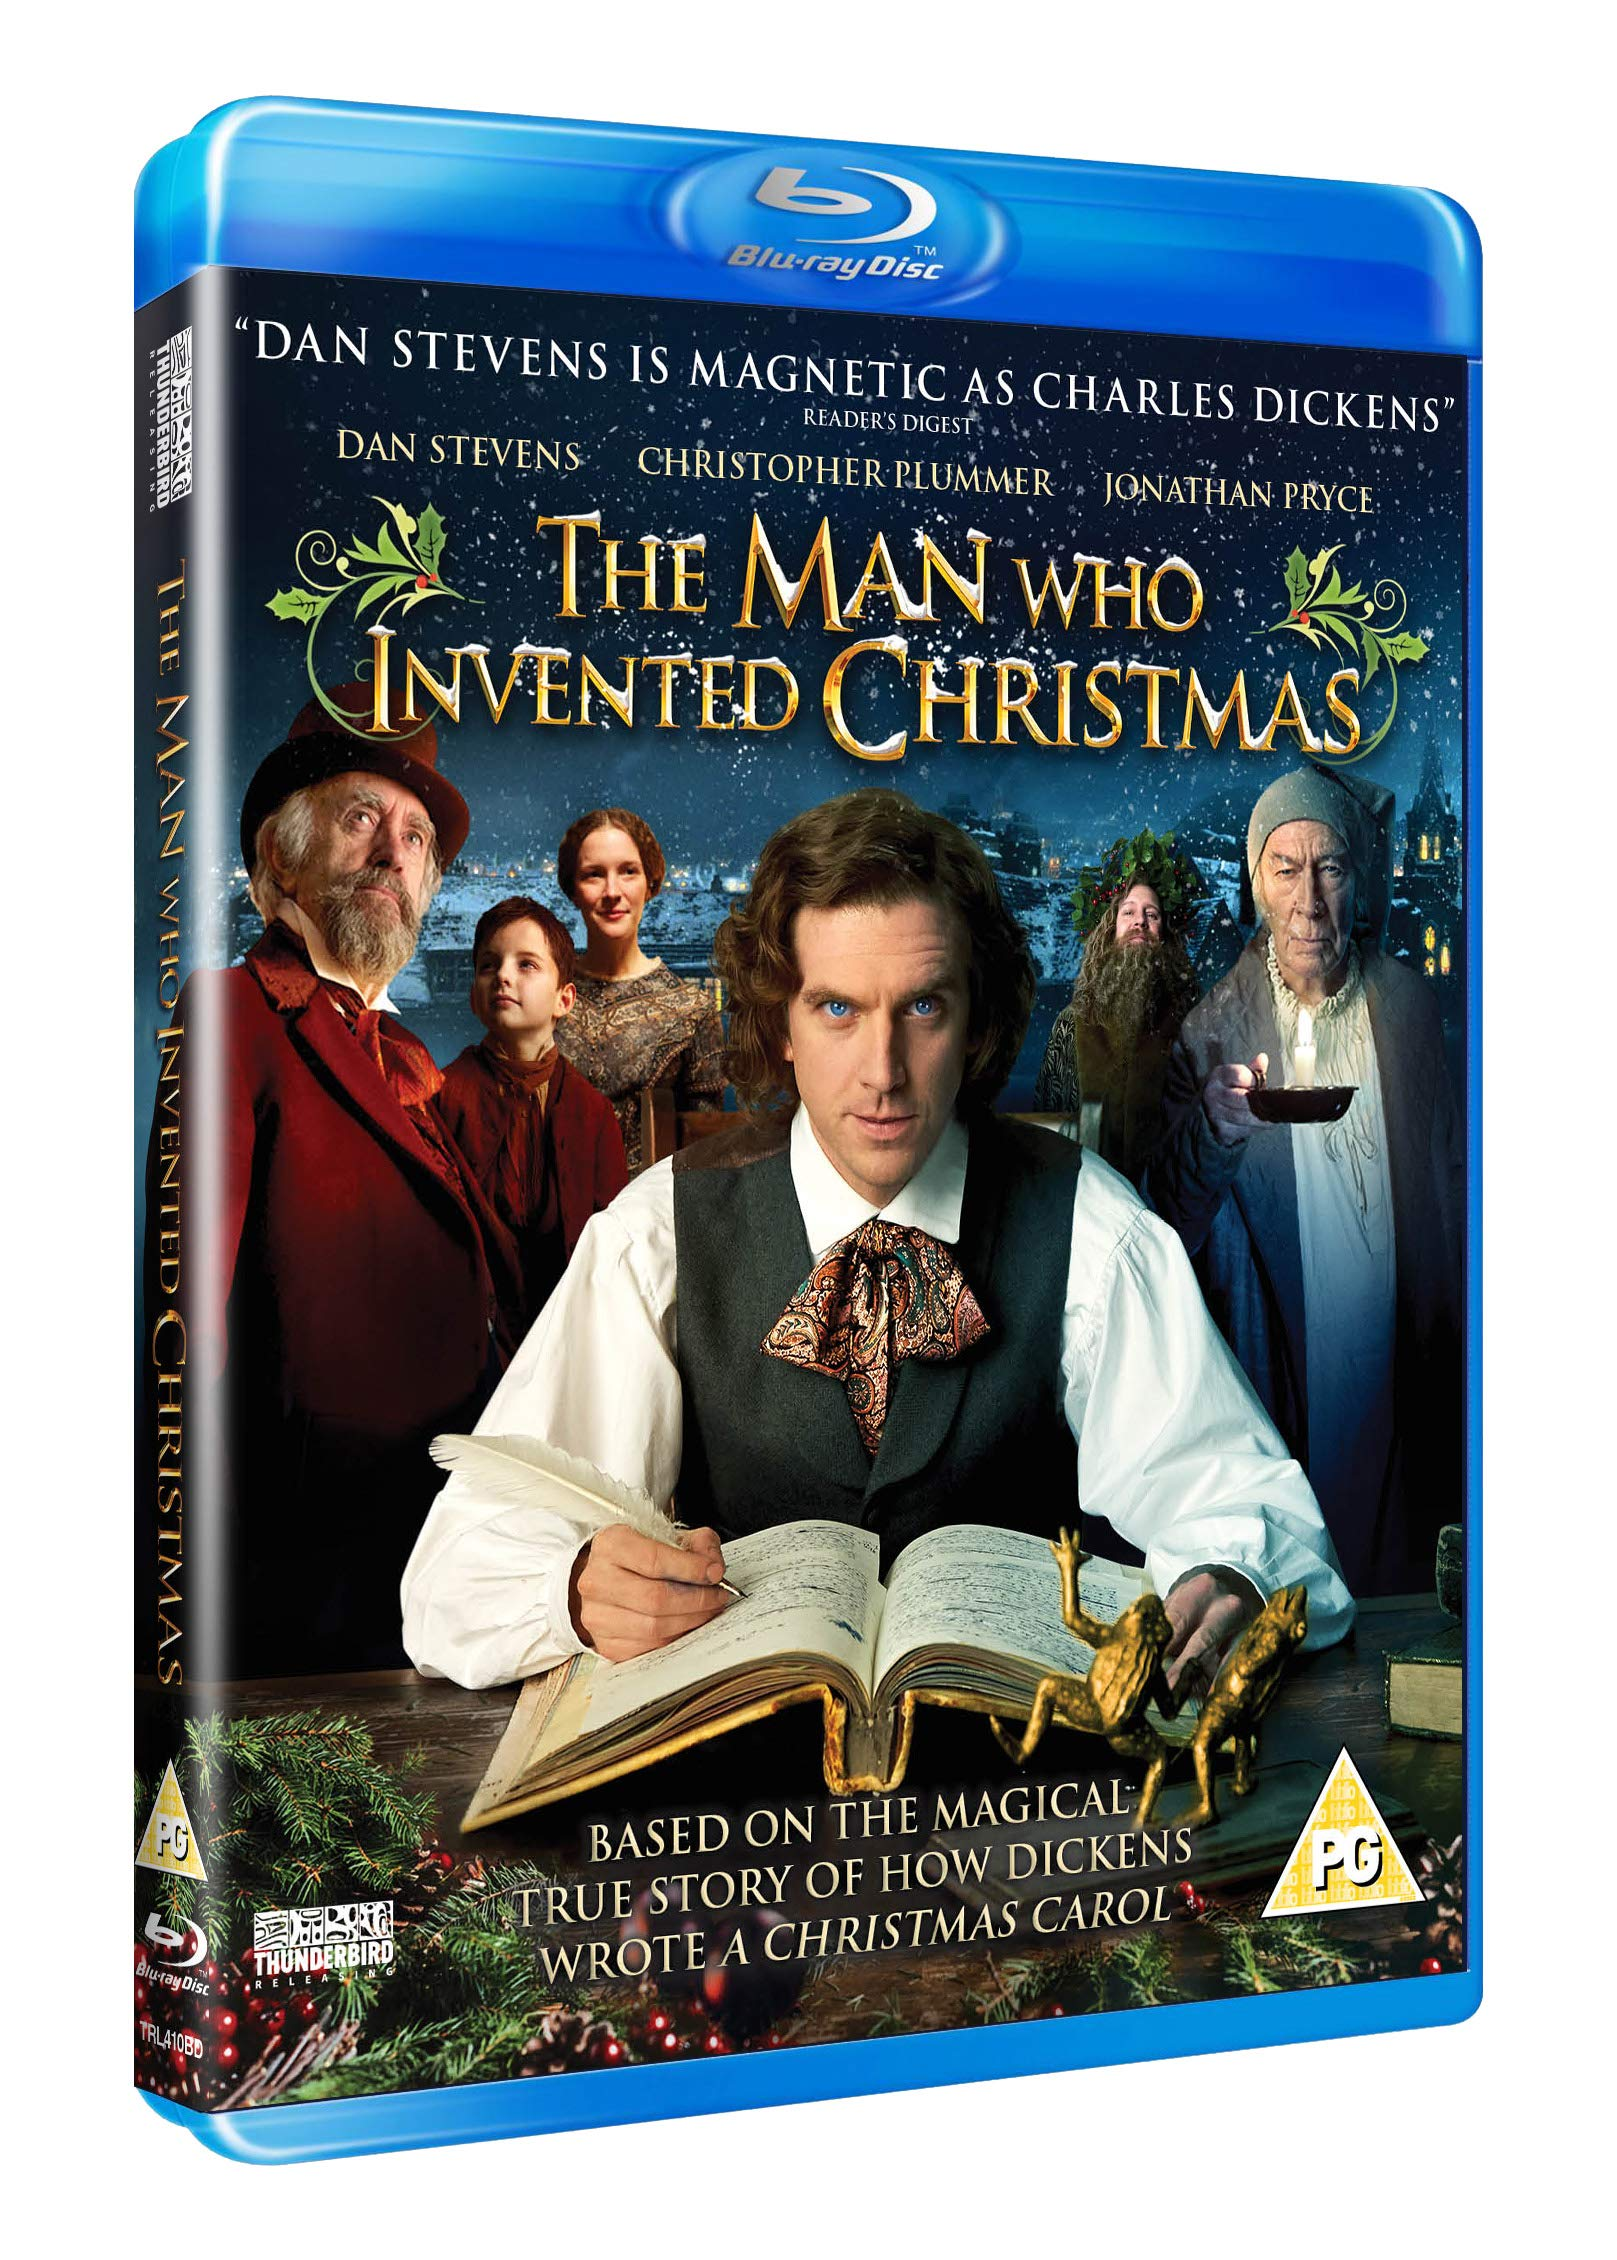 The Man Who Invented Christmas 2017.The Man Who Invented Christmas Blu Ray 2017